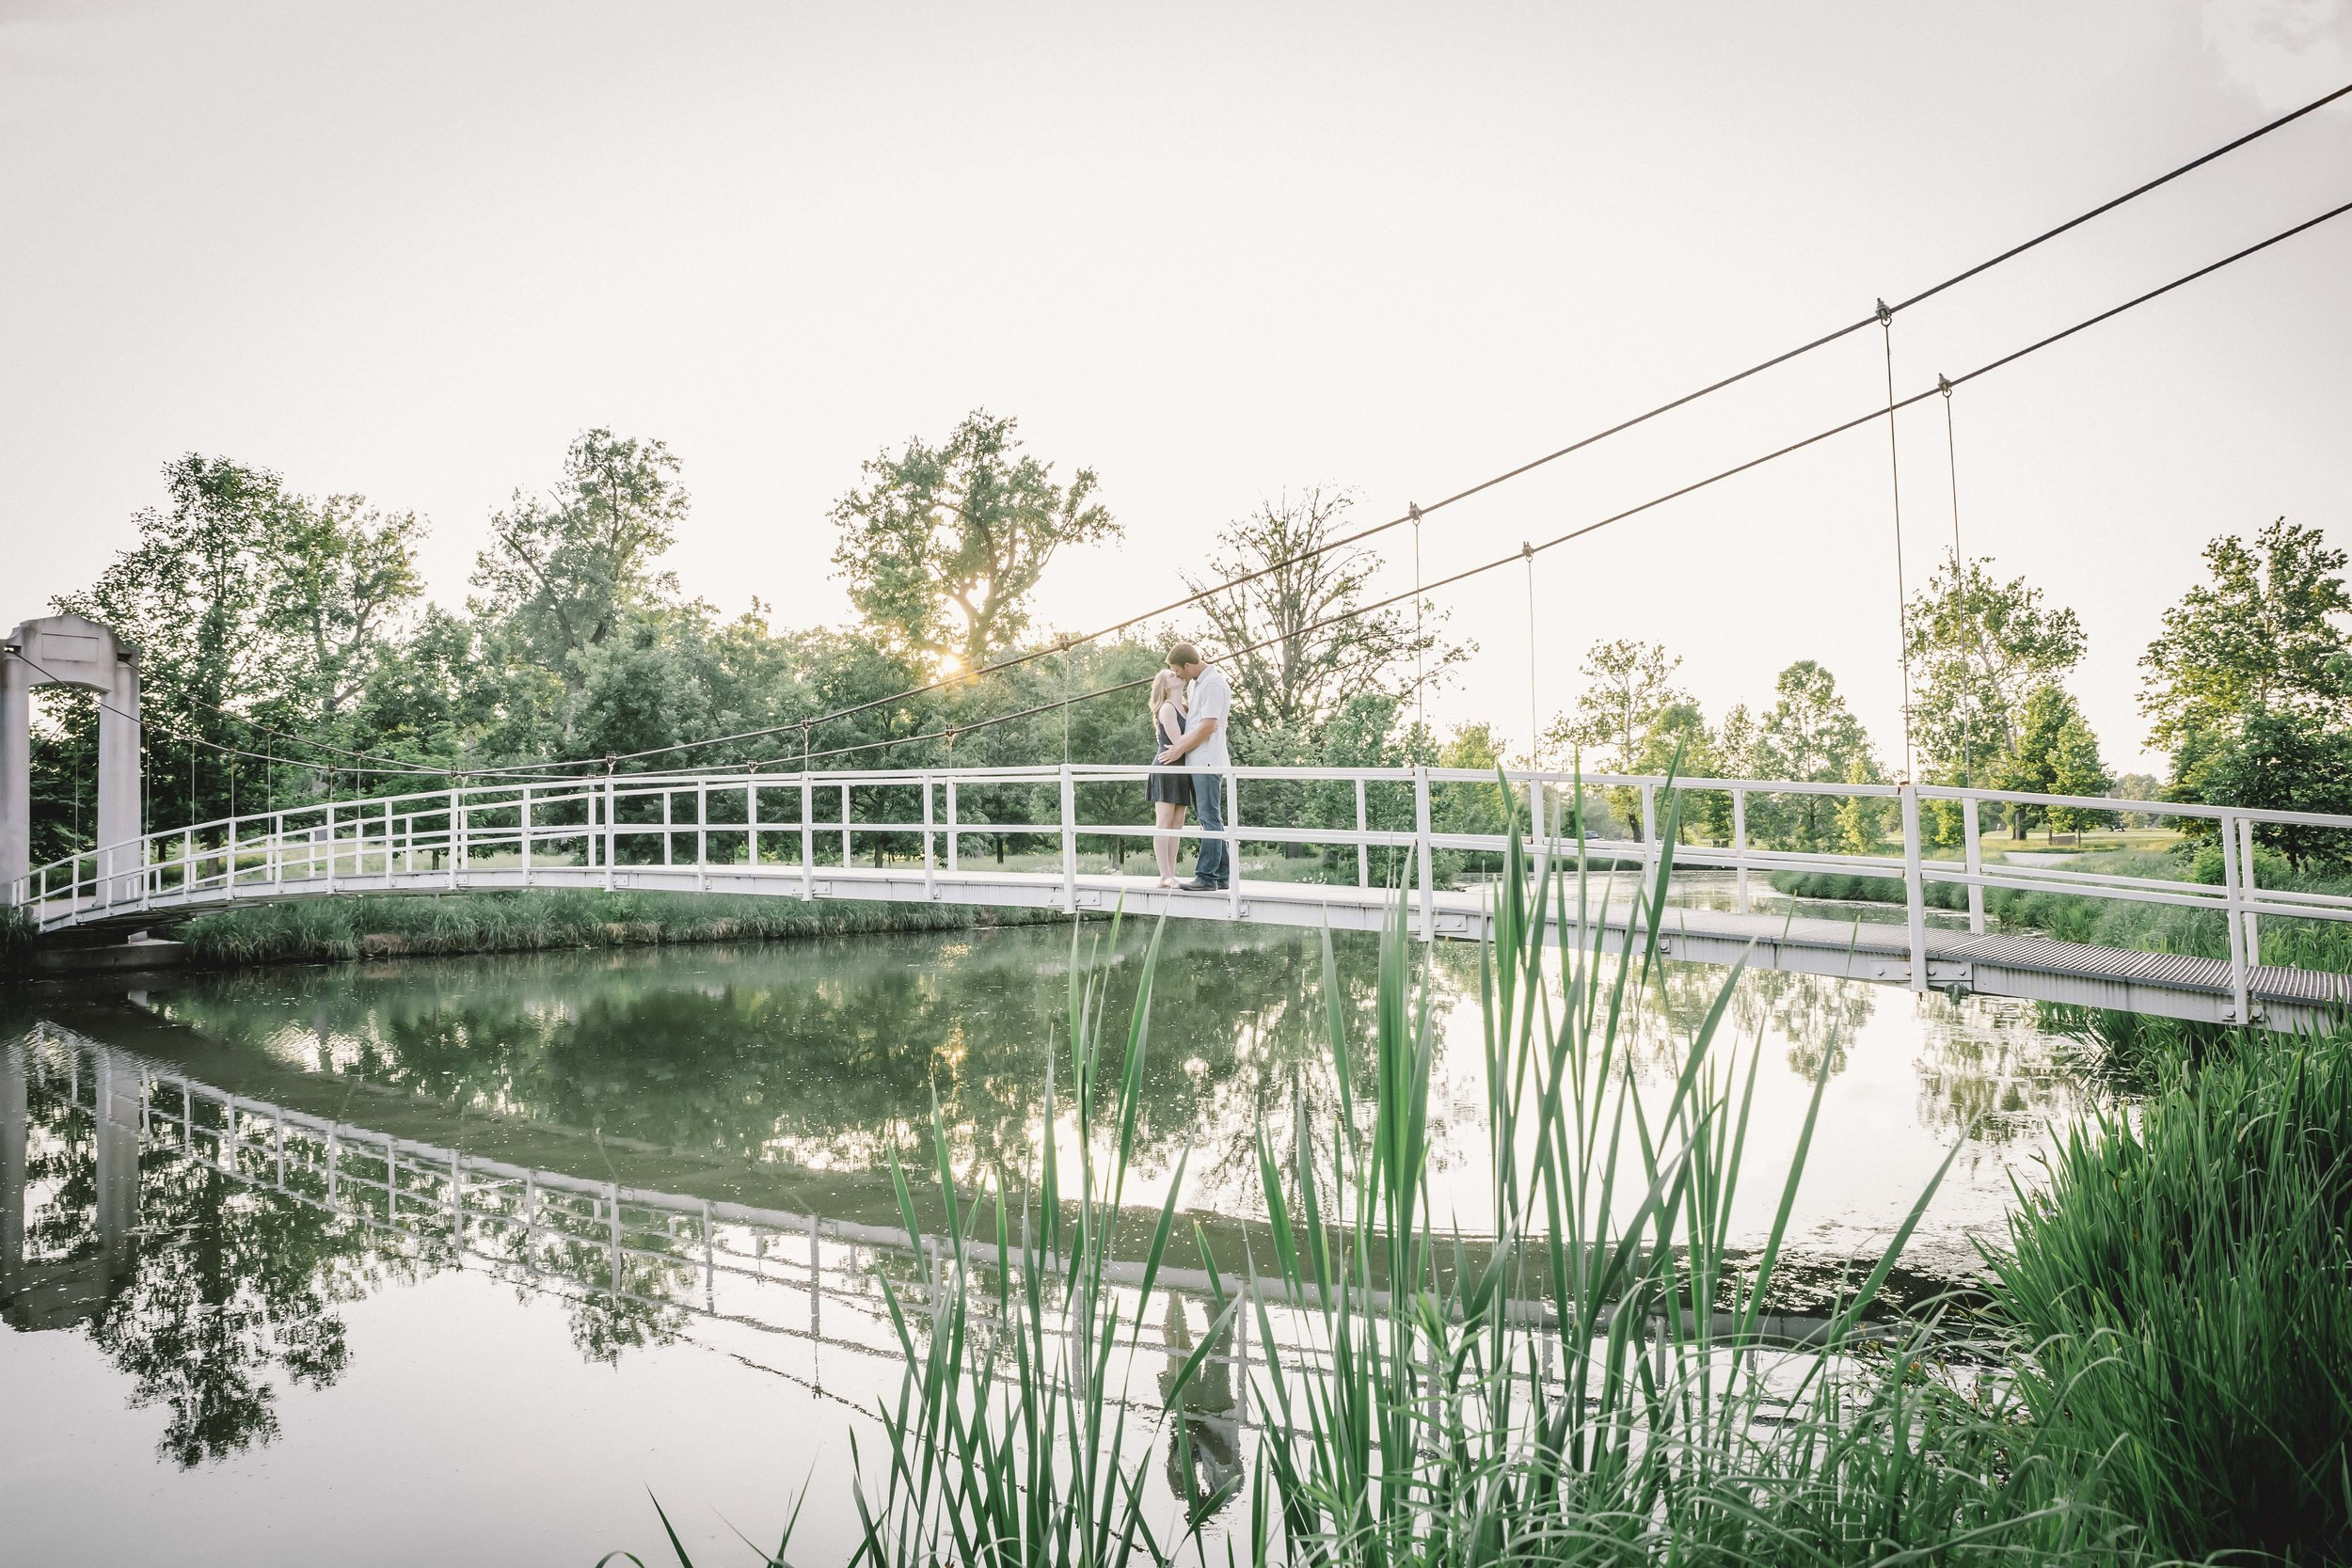 Rebecca_K_Clark_Photography_Engagement_Gallery_Web-40.JPG